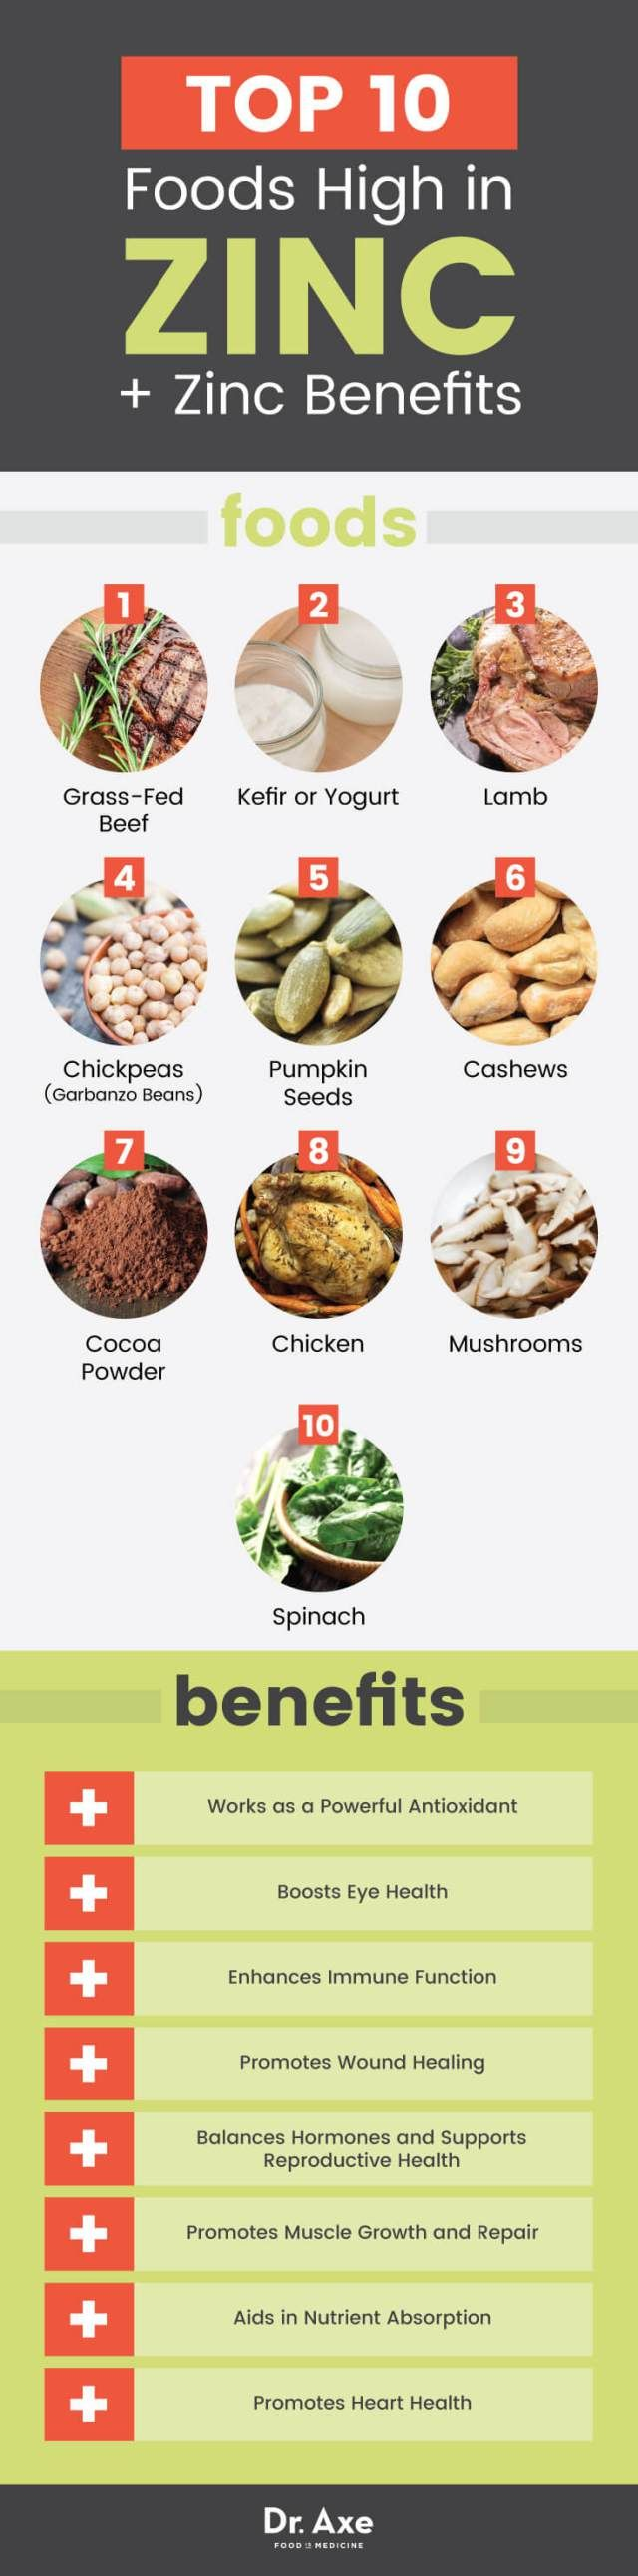 Zinc is an essential trace mineral that plays a role in more than a hundred enzymatic reactions in the body, which is why consuming foods high in zinc is so important. It's needed in small amounts every day in order to maintain your health and perform important functions. Zinc benefits come from its presence within all bodily tissue — …